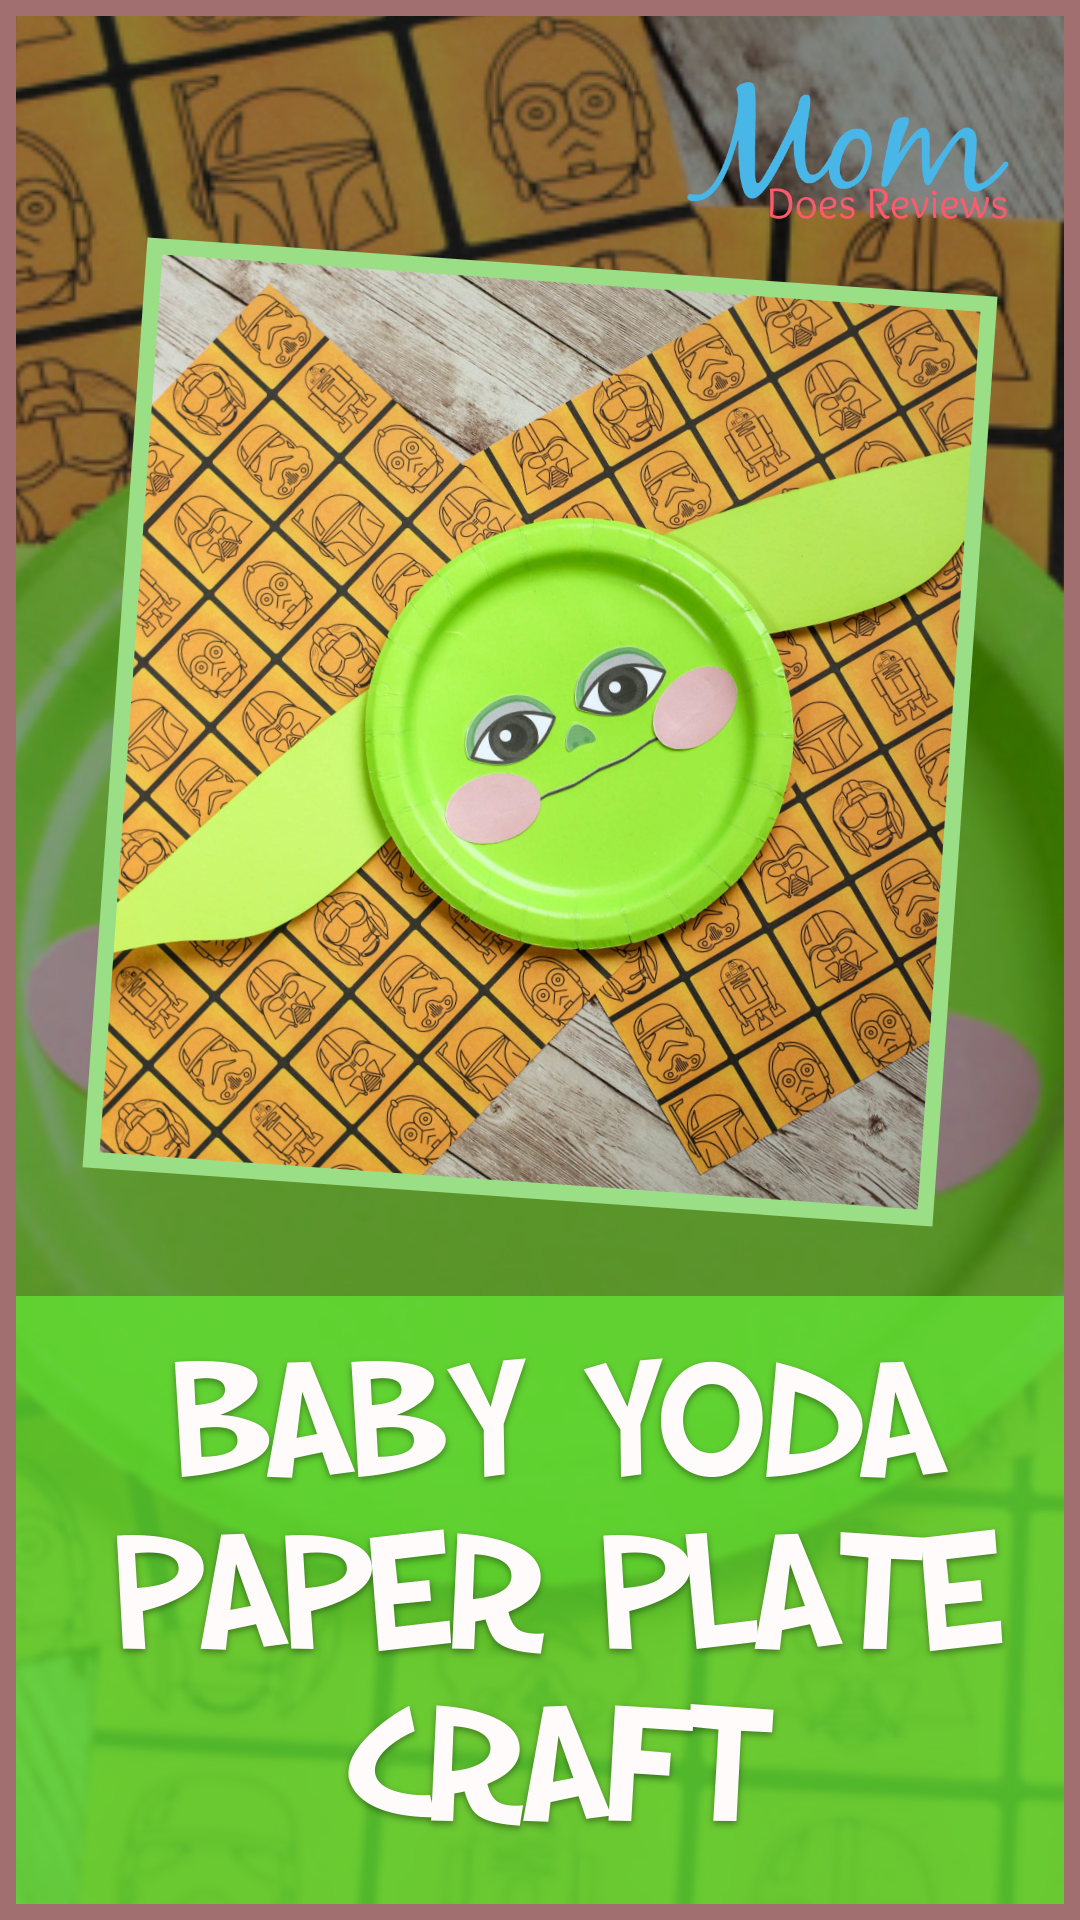 Baby Yoda Paper Plate Craft